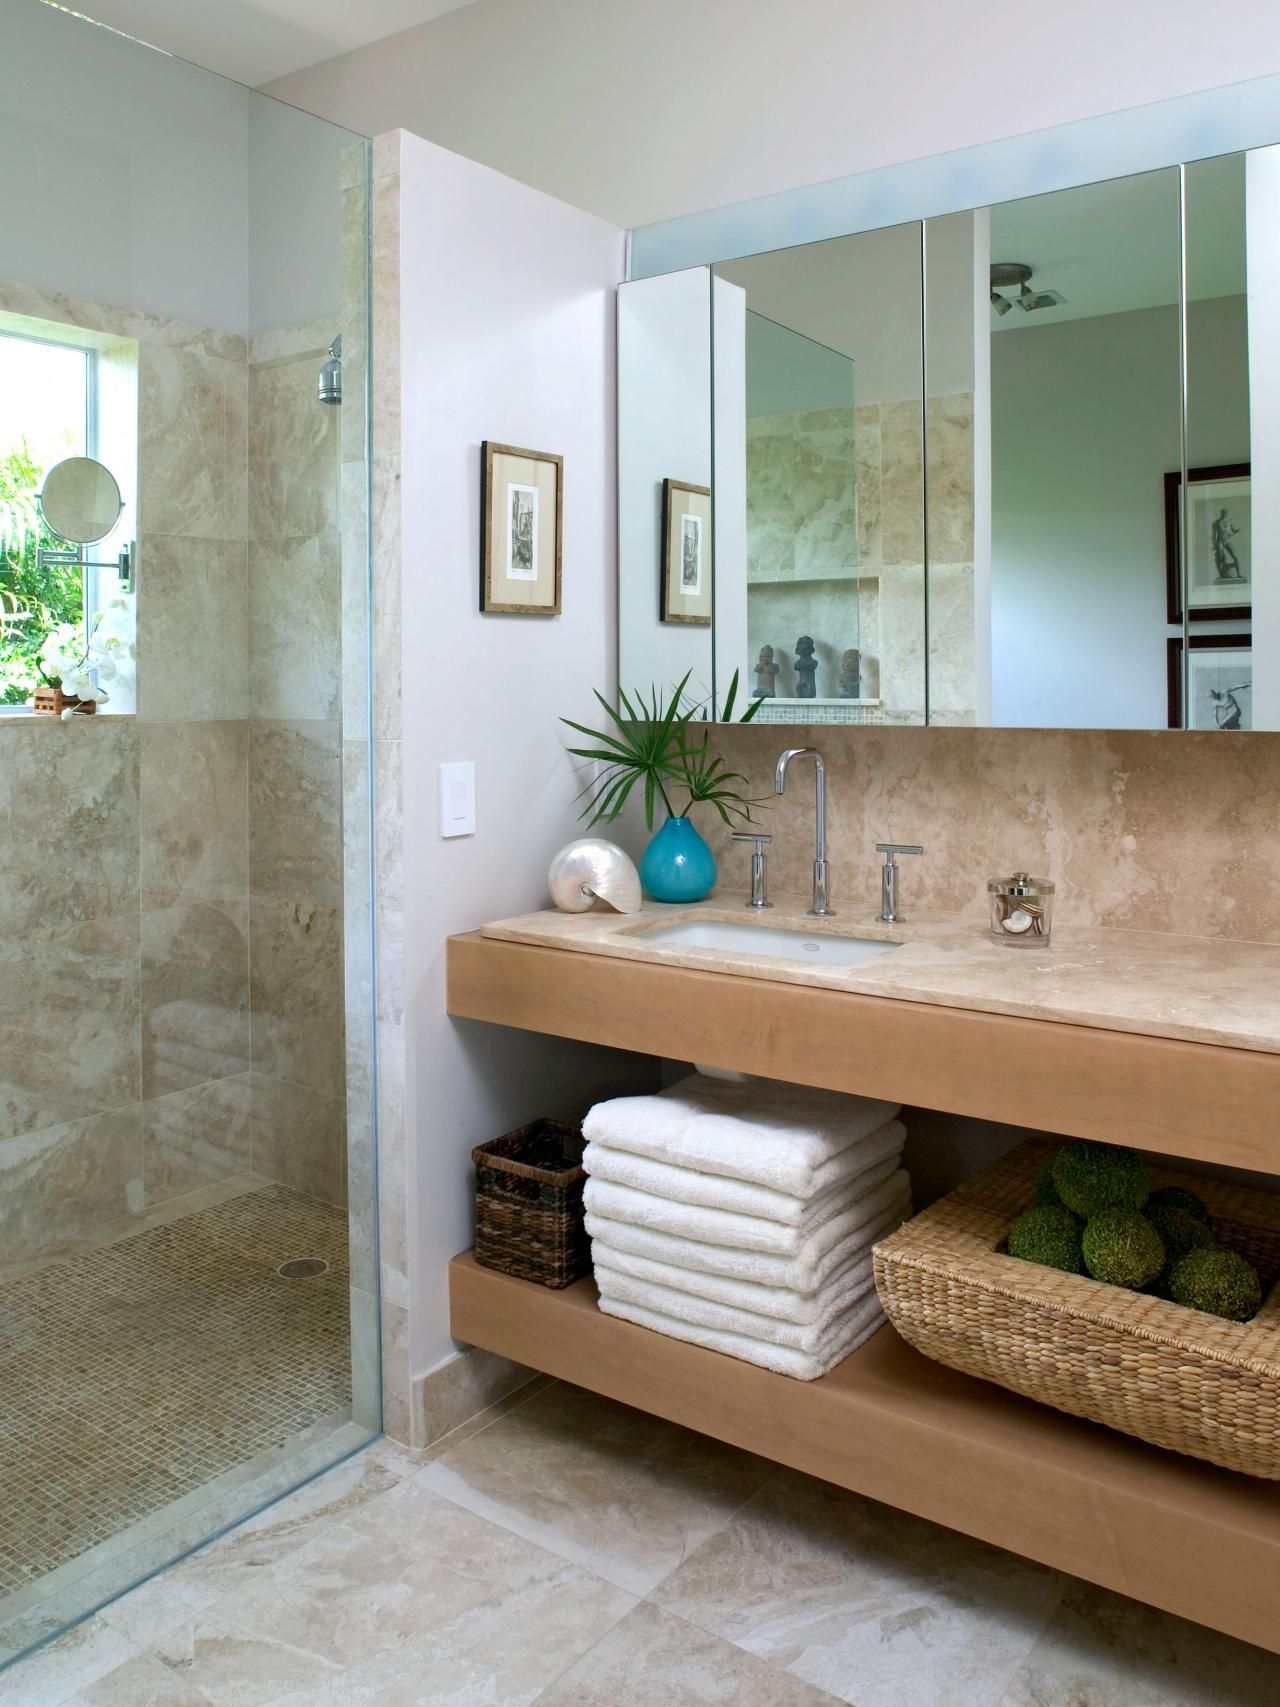 get rustic bathroom ideas and prepare to create a warm and welcoming country style bathroom